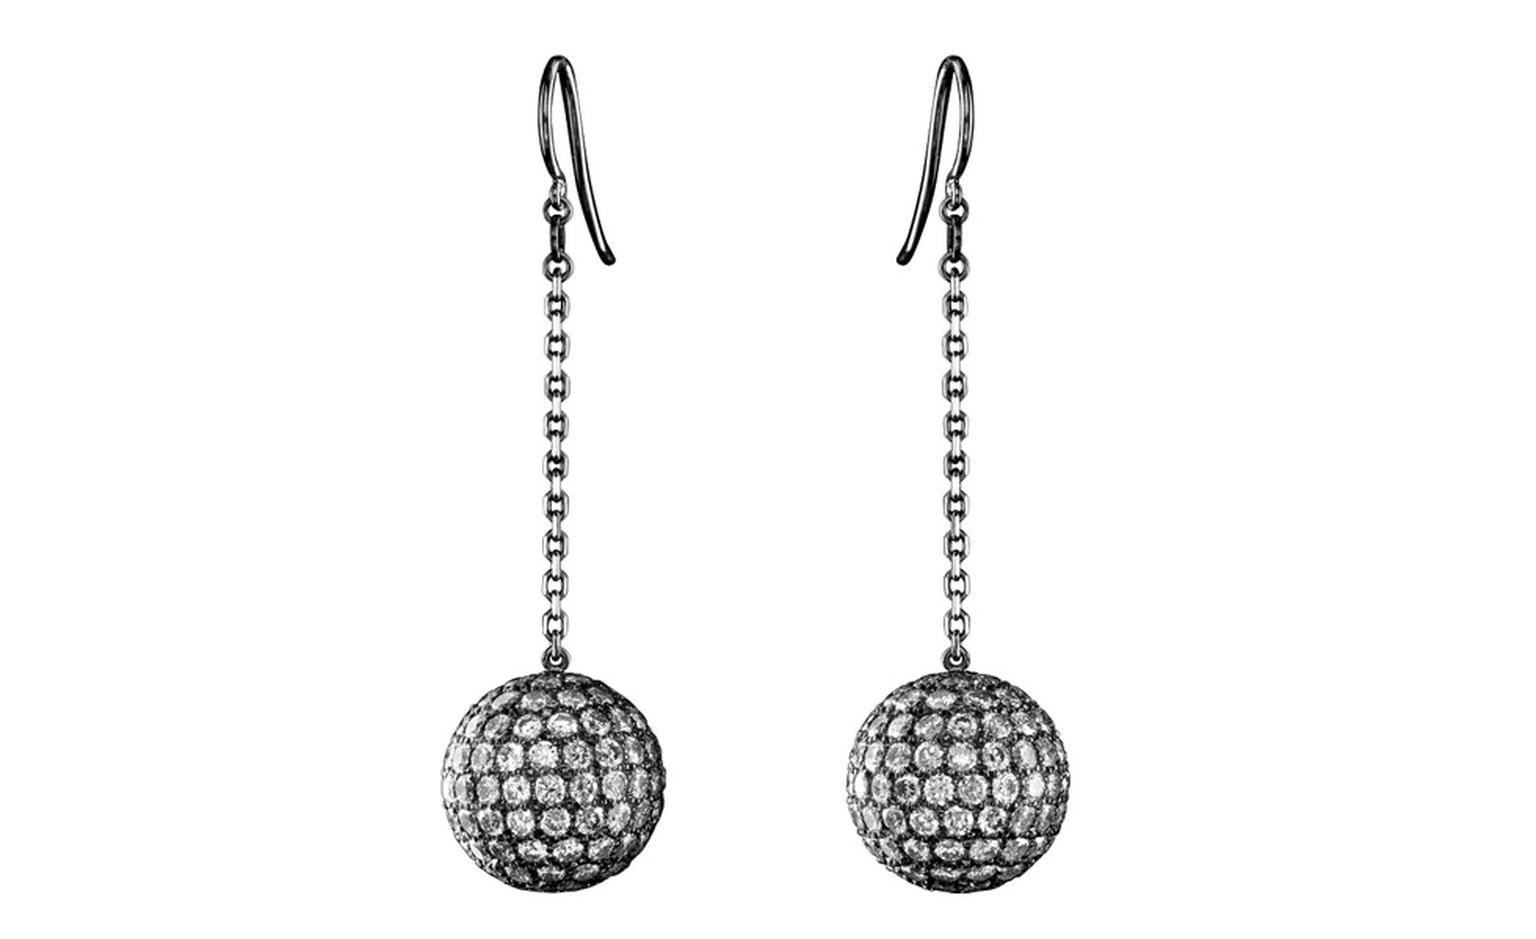 Solange Azagury-Partridge Mirror Ball earrings as worn by Helena Bonham Carter at BAFTAs 2011